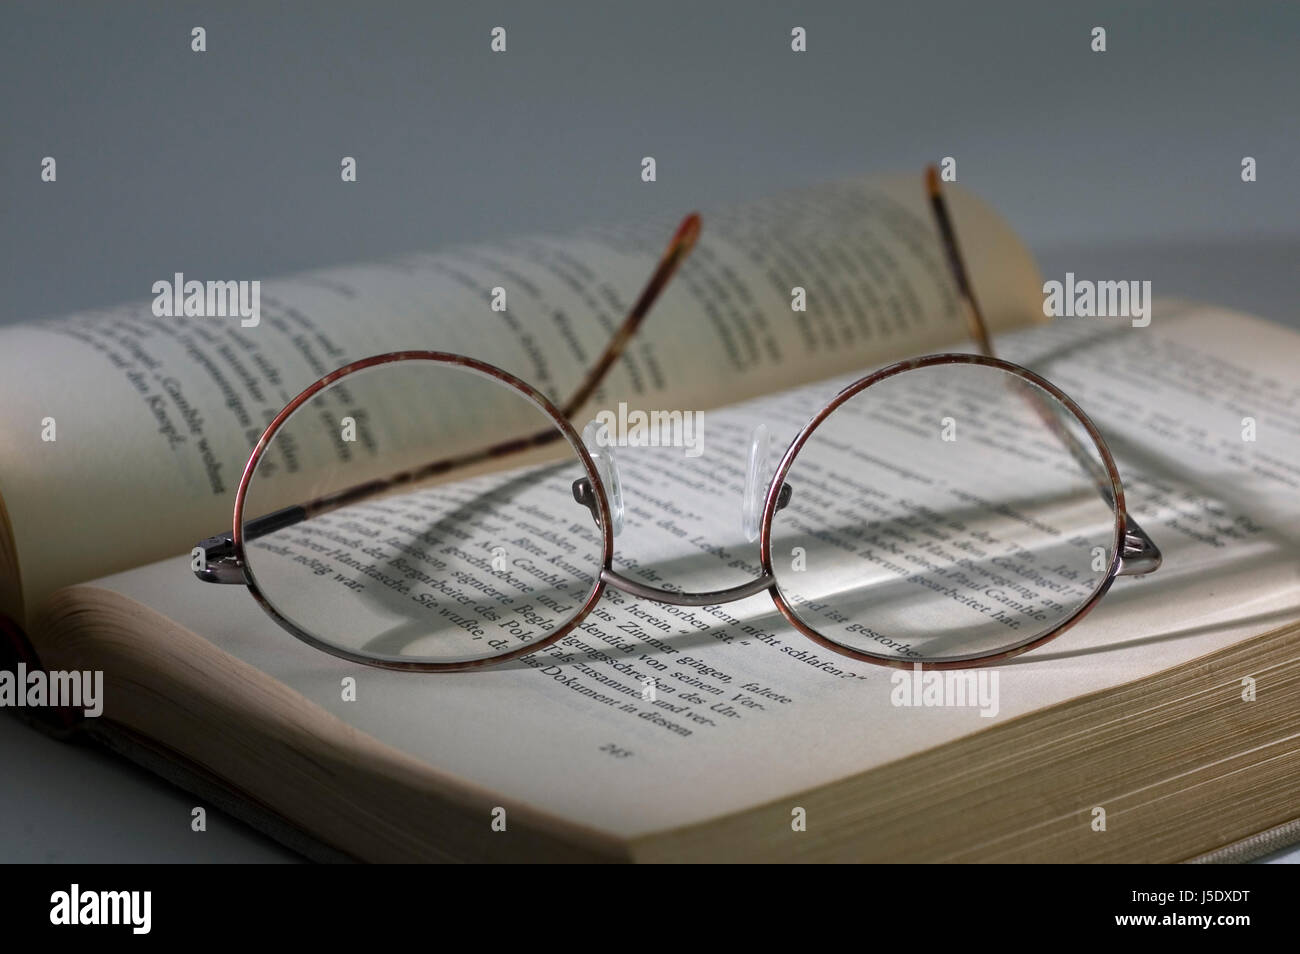 writing font typography print text publication scanning reads book pages sides - Stock Image